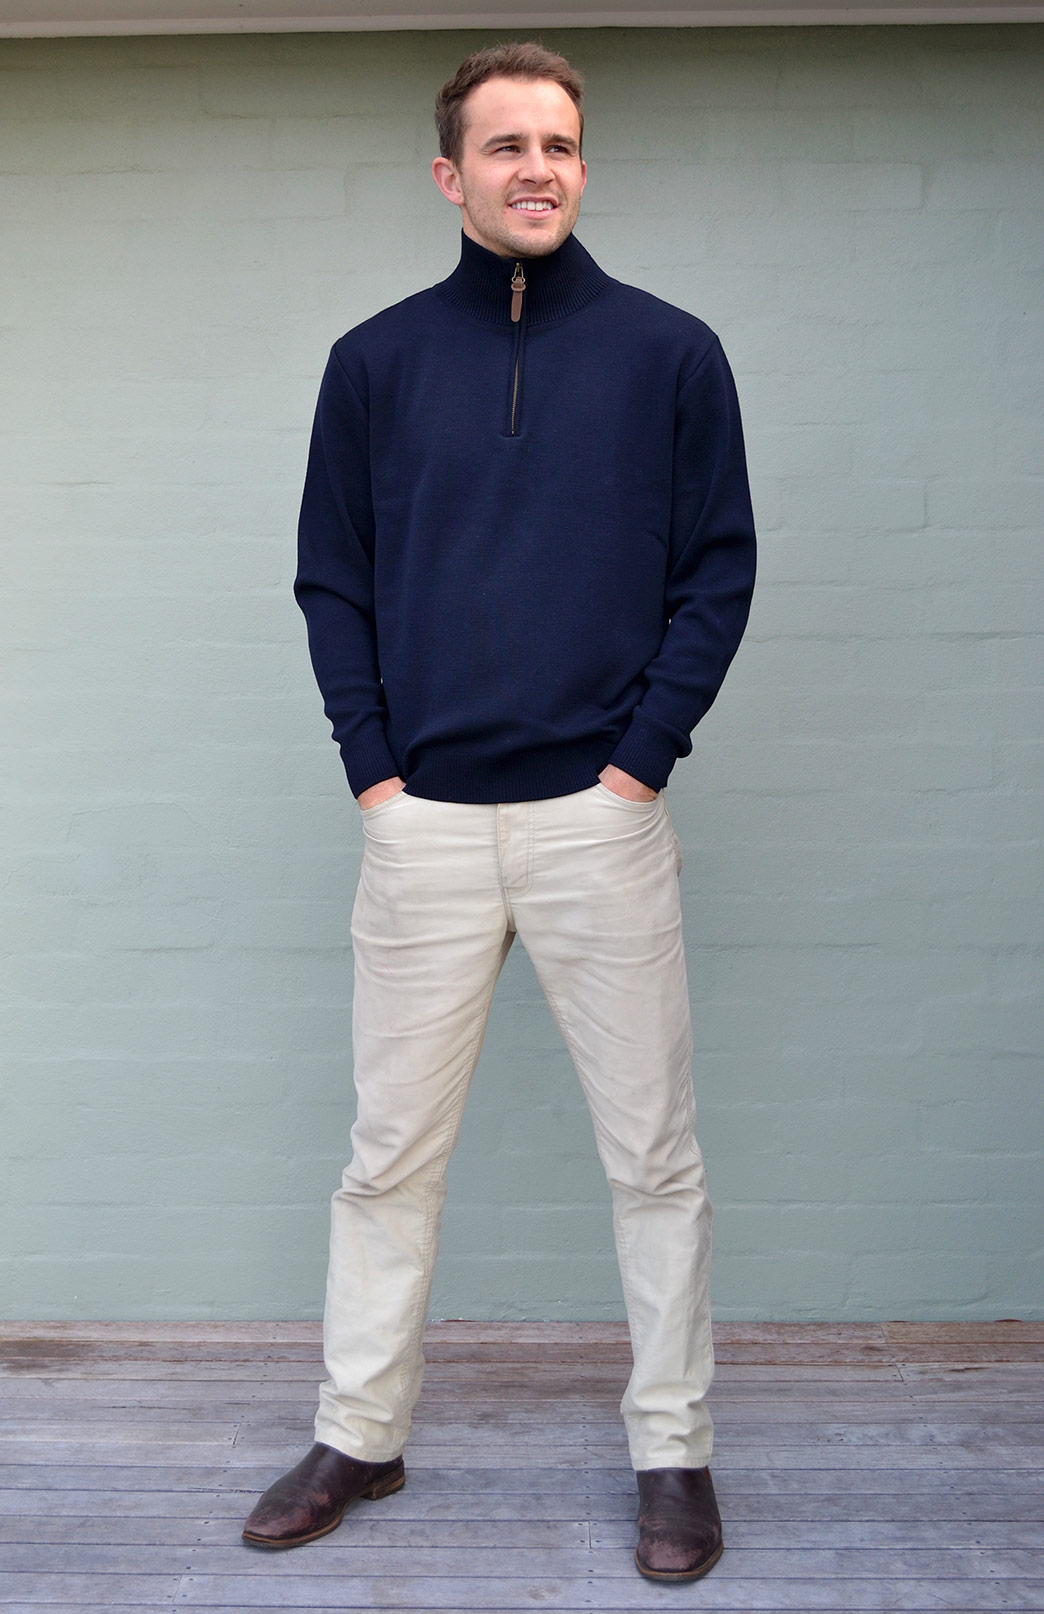 Men's Knitted Wool Zip Neck Jumper - Men's Navy Blue Knitted Superfine Merino Wool Classic Style Zip Neck Jumper - Smitten Merino Tasmania Australia